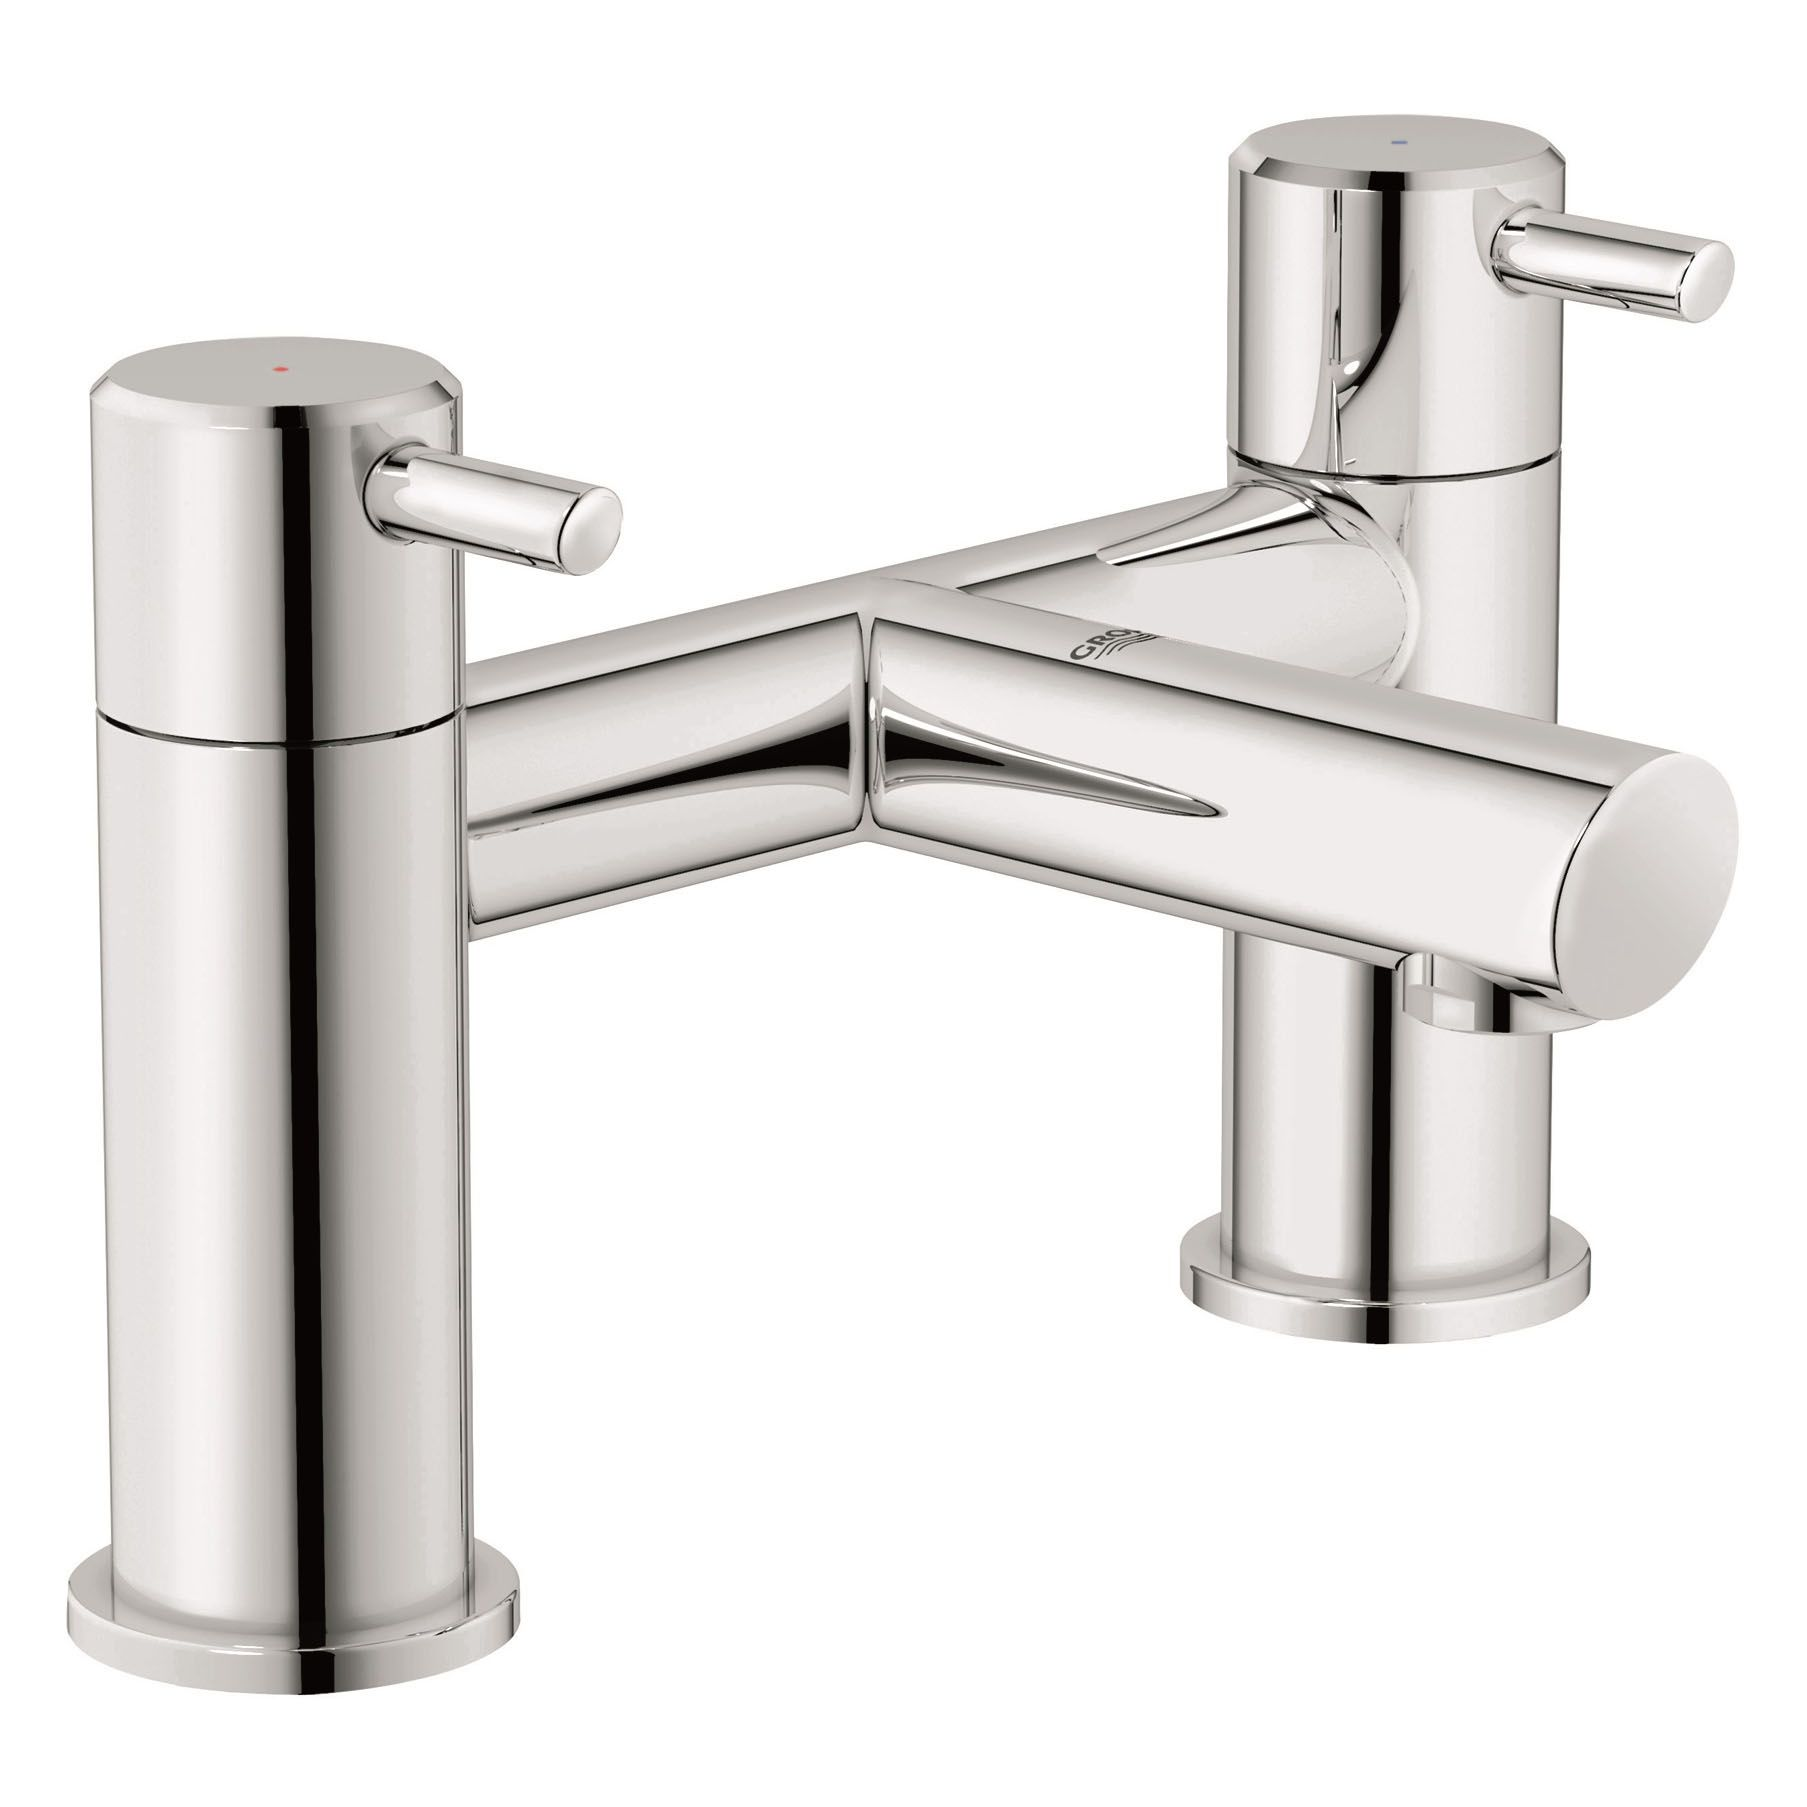 Grohe Feel Chrome Bath Filler Tap